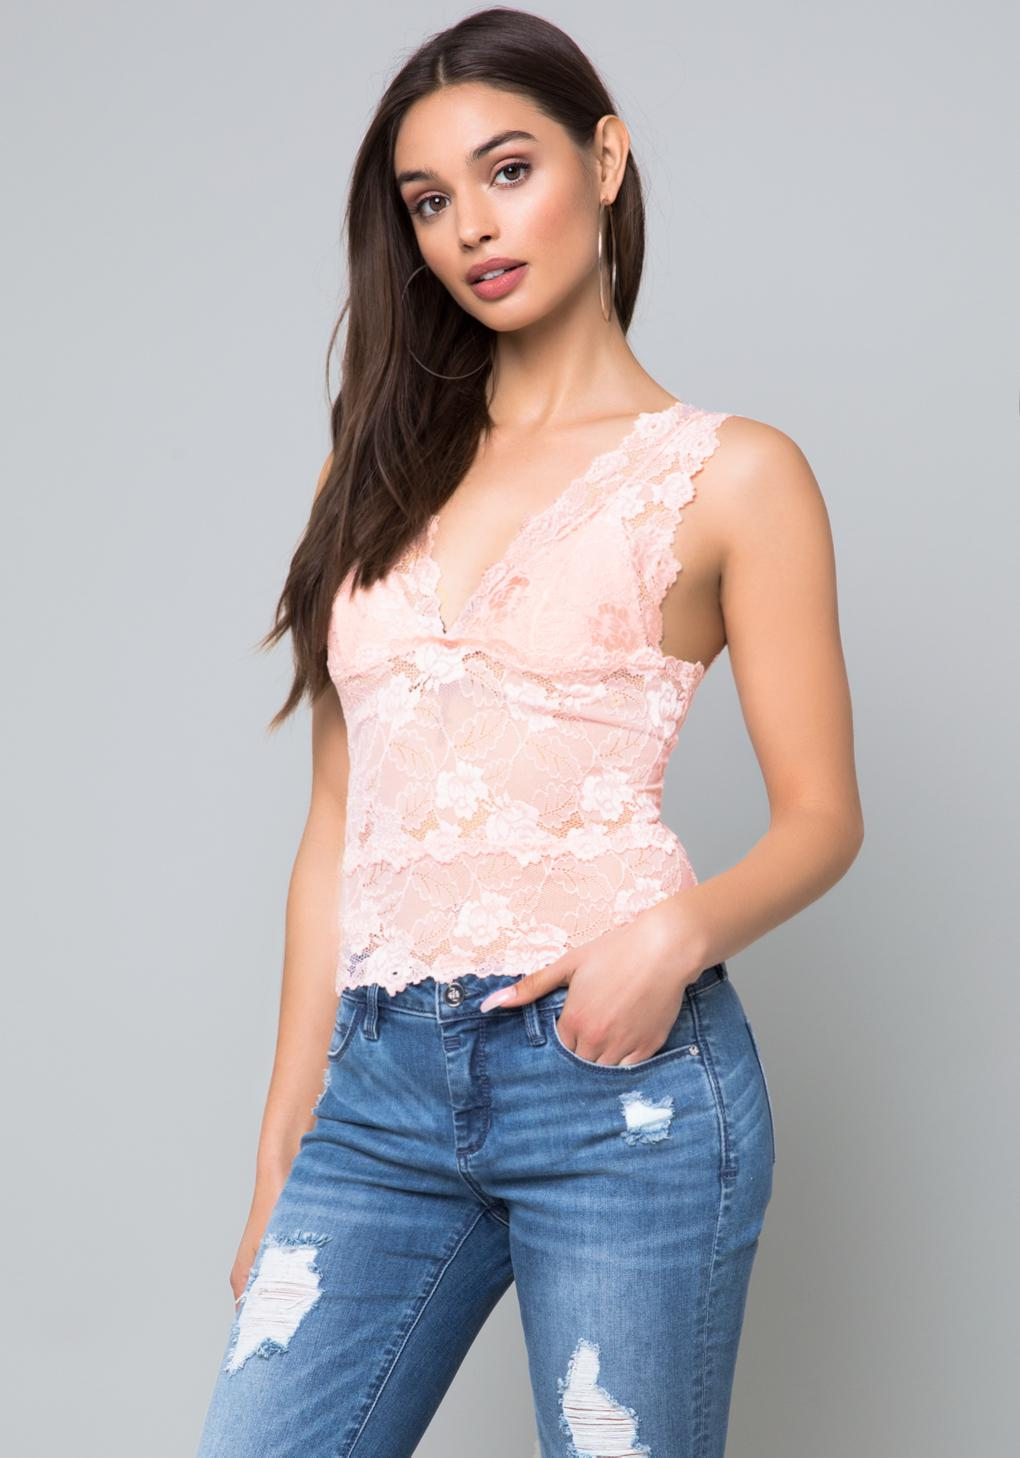 381a3a5237d28 Lyst - Bebe Lace Lingerie Top in Pink